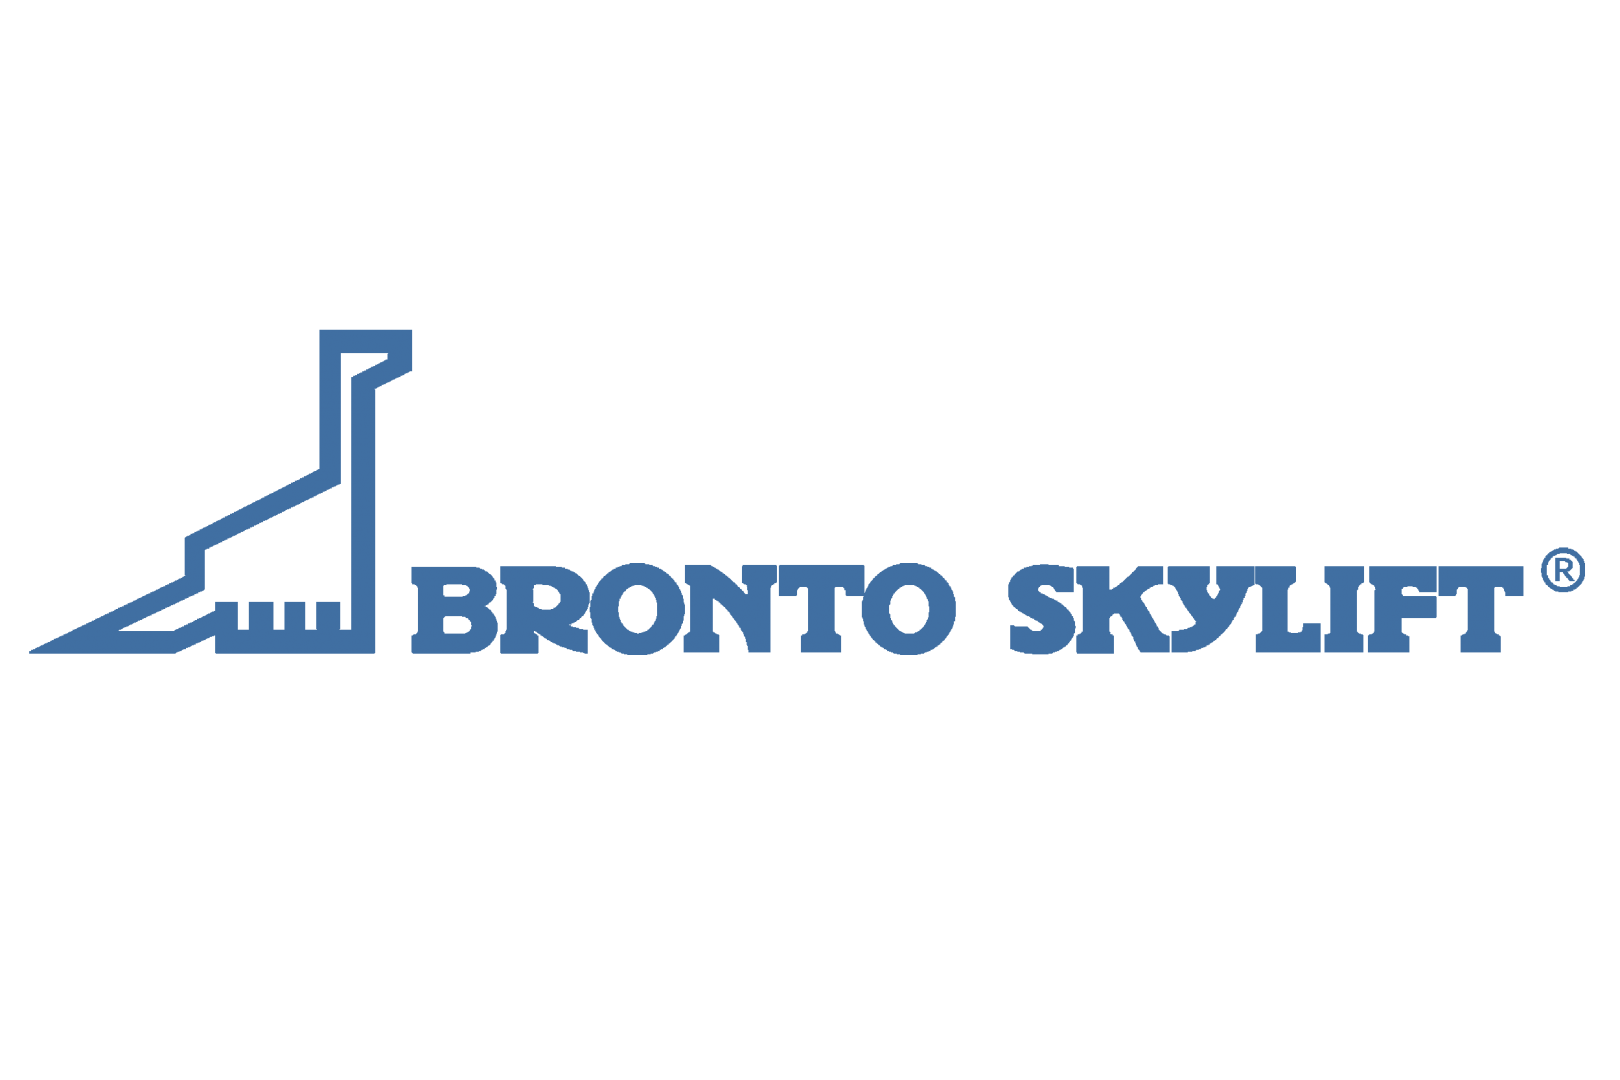 Bronto Skylift.png